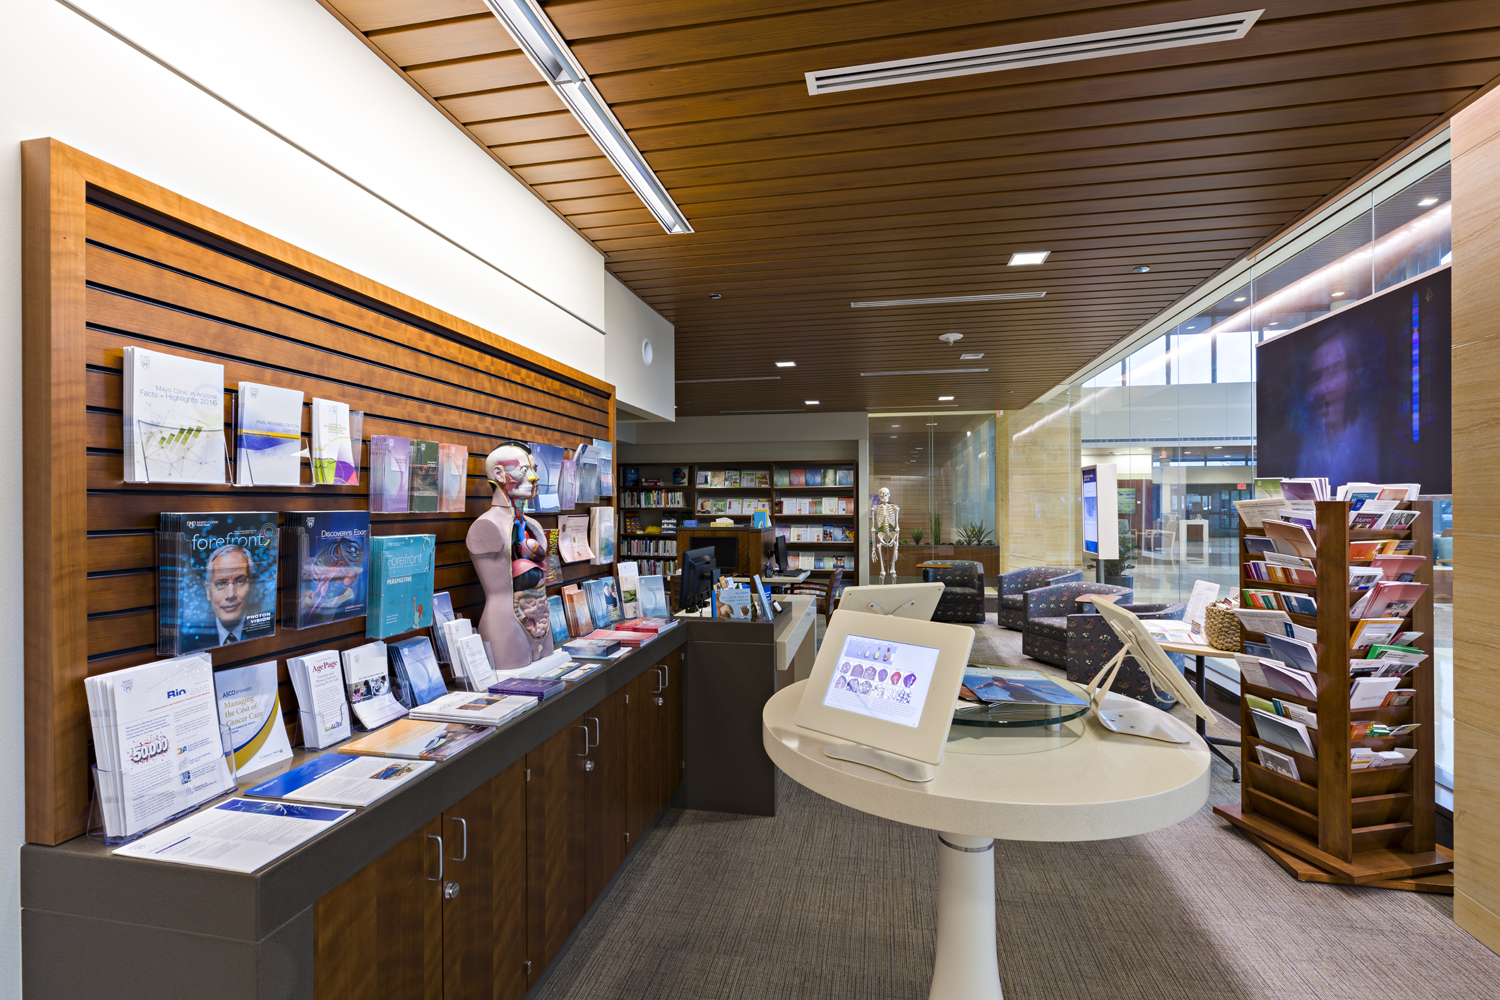 Interior of Phoenix Patient Library